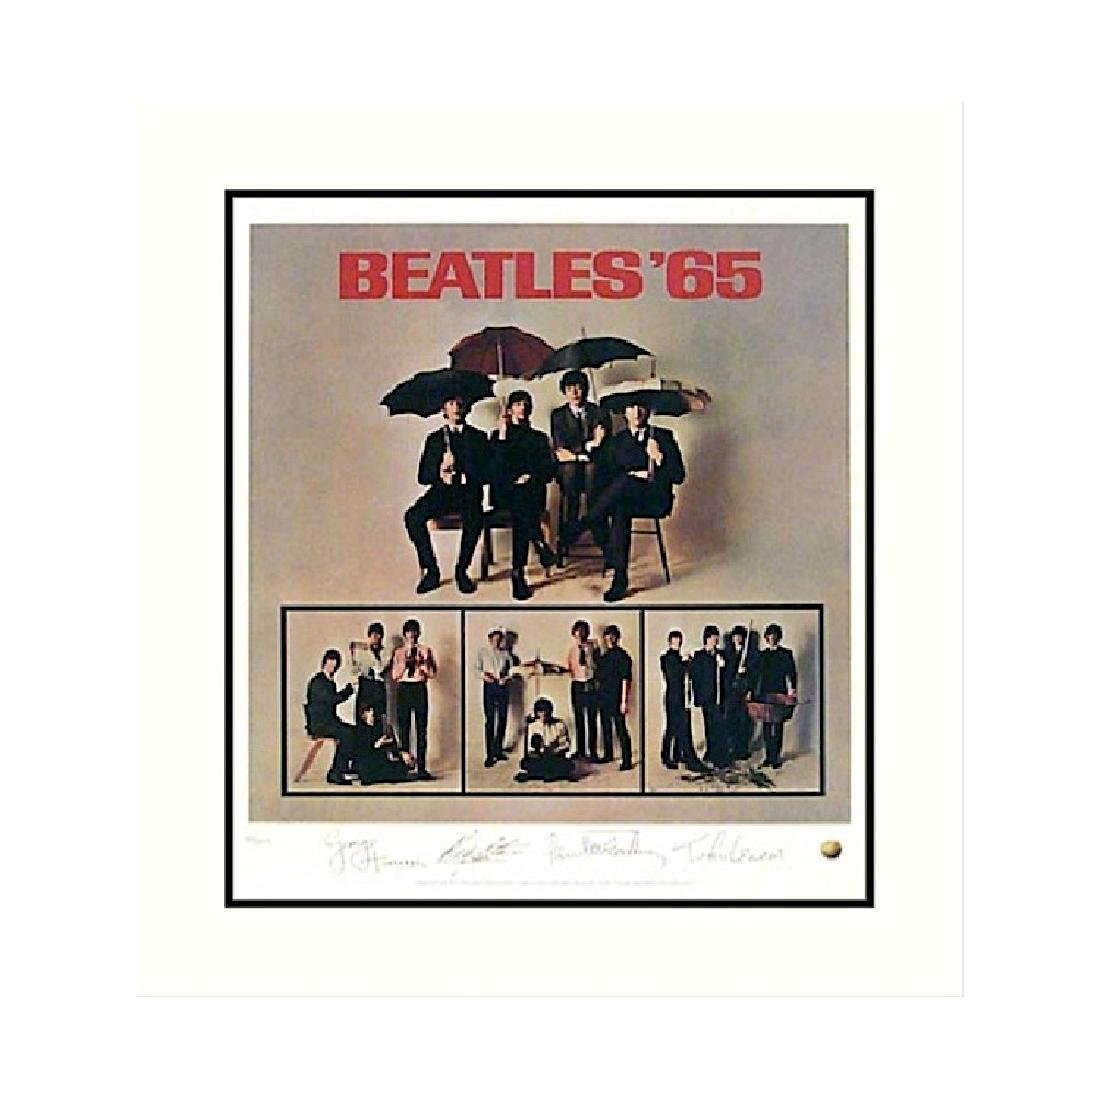 Beatles - Beatles 65 - Limited Edition Lithograph Print